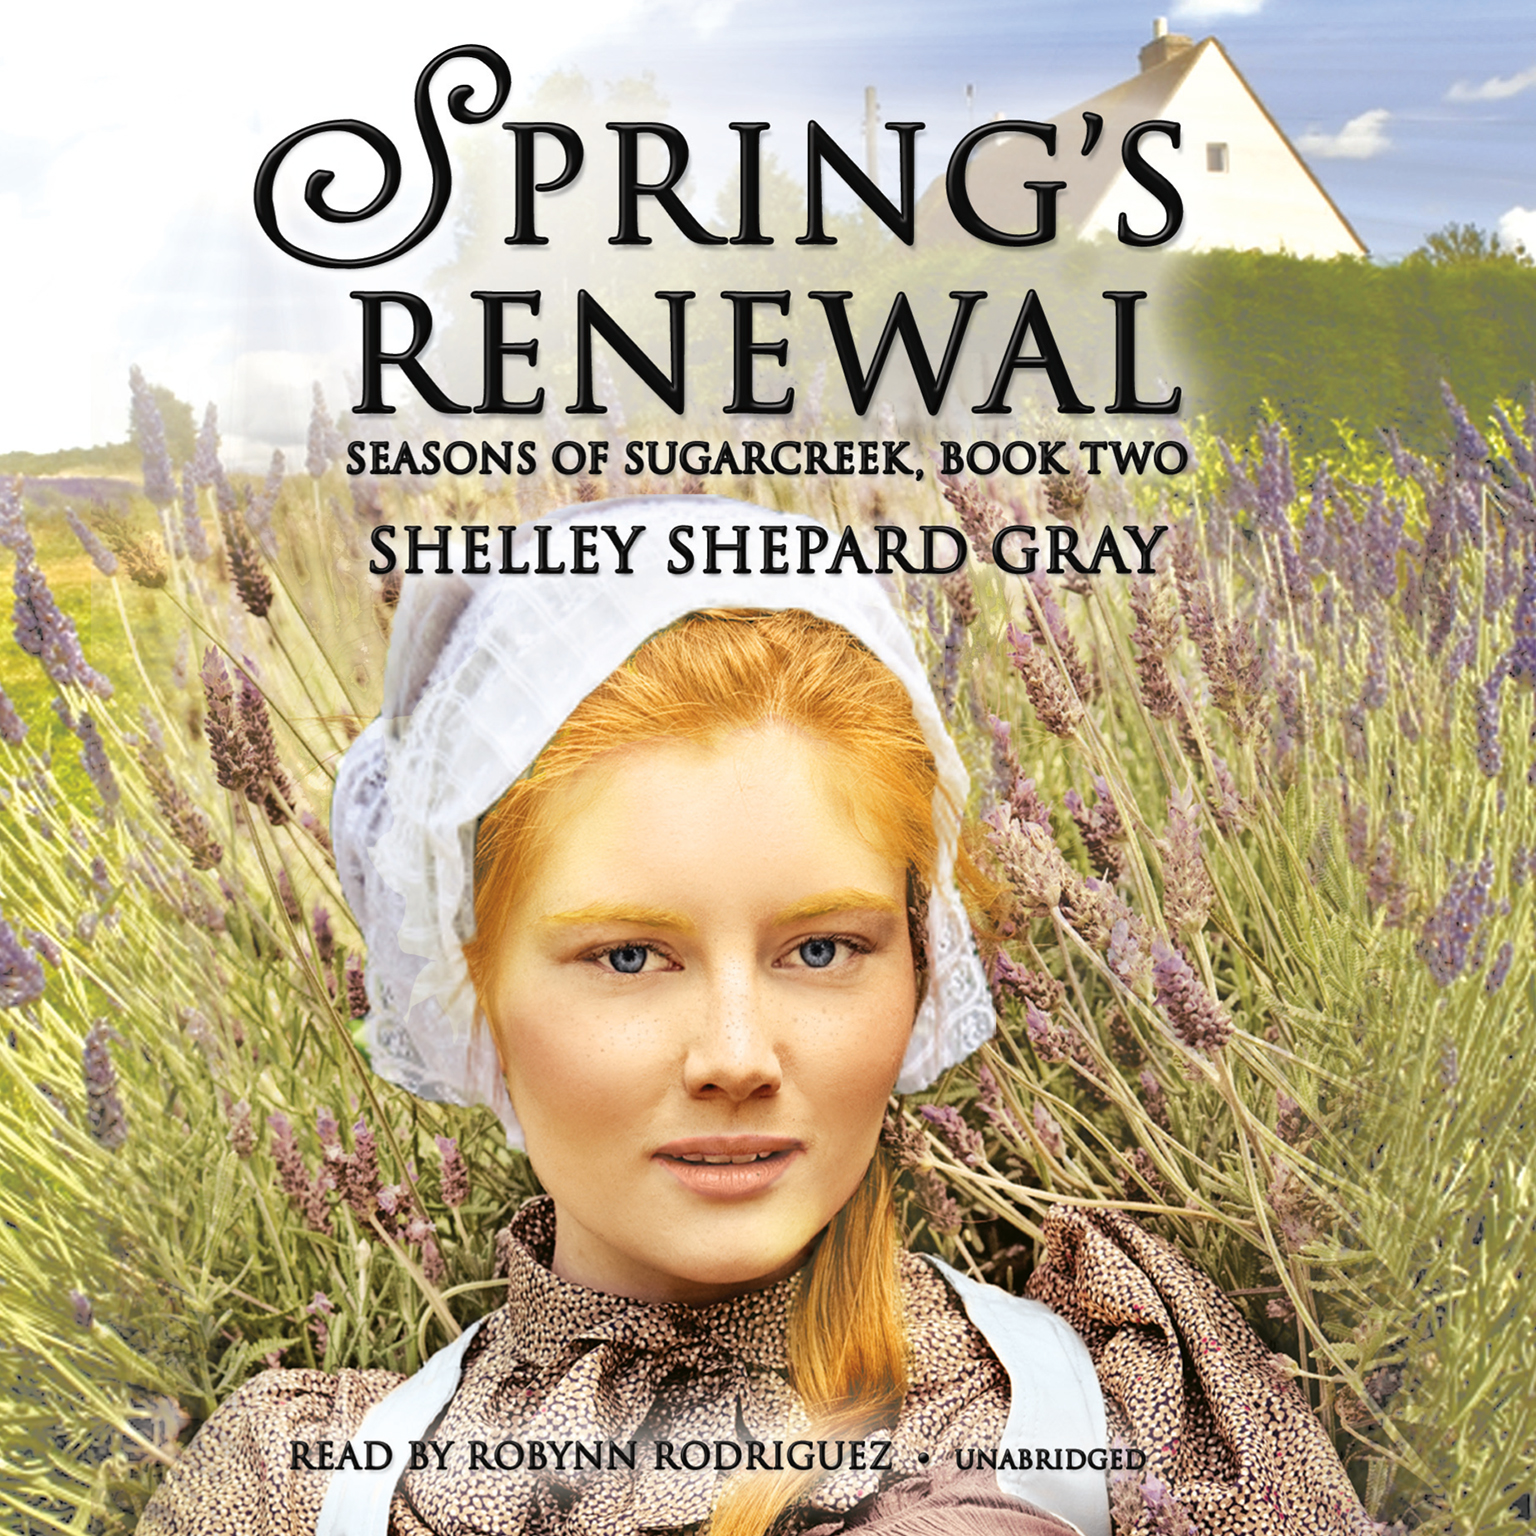 Printable Spring's Renewal: Seasons of Sugarcreek, Book Two Audiobook Cover Art